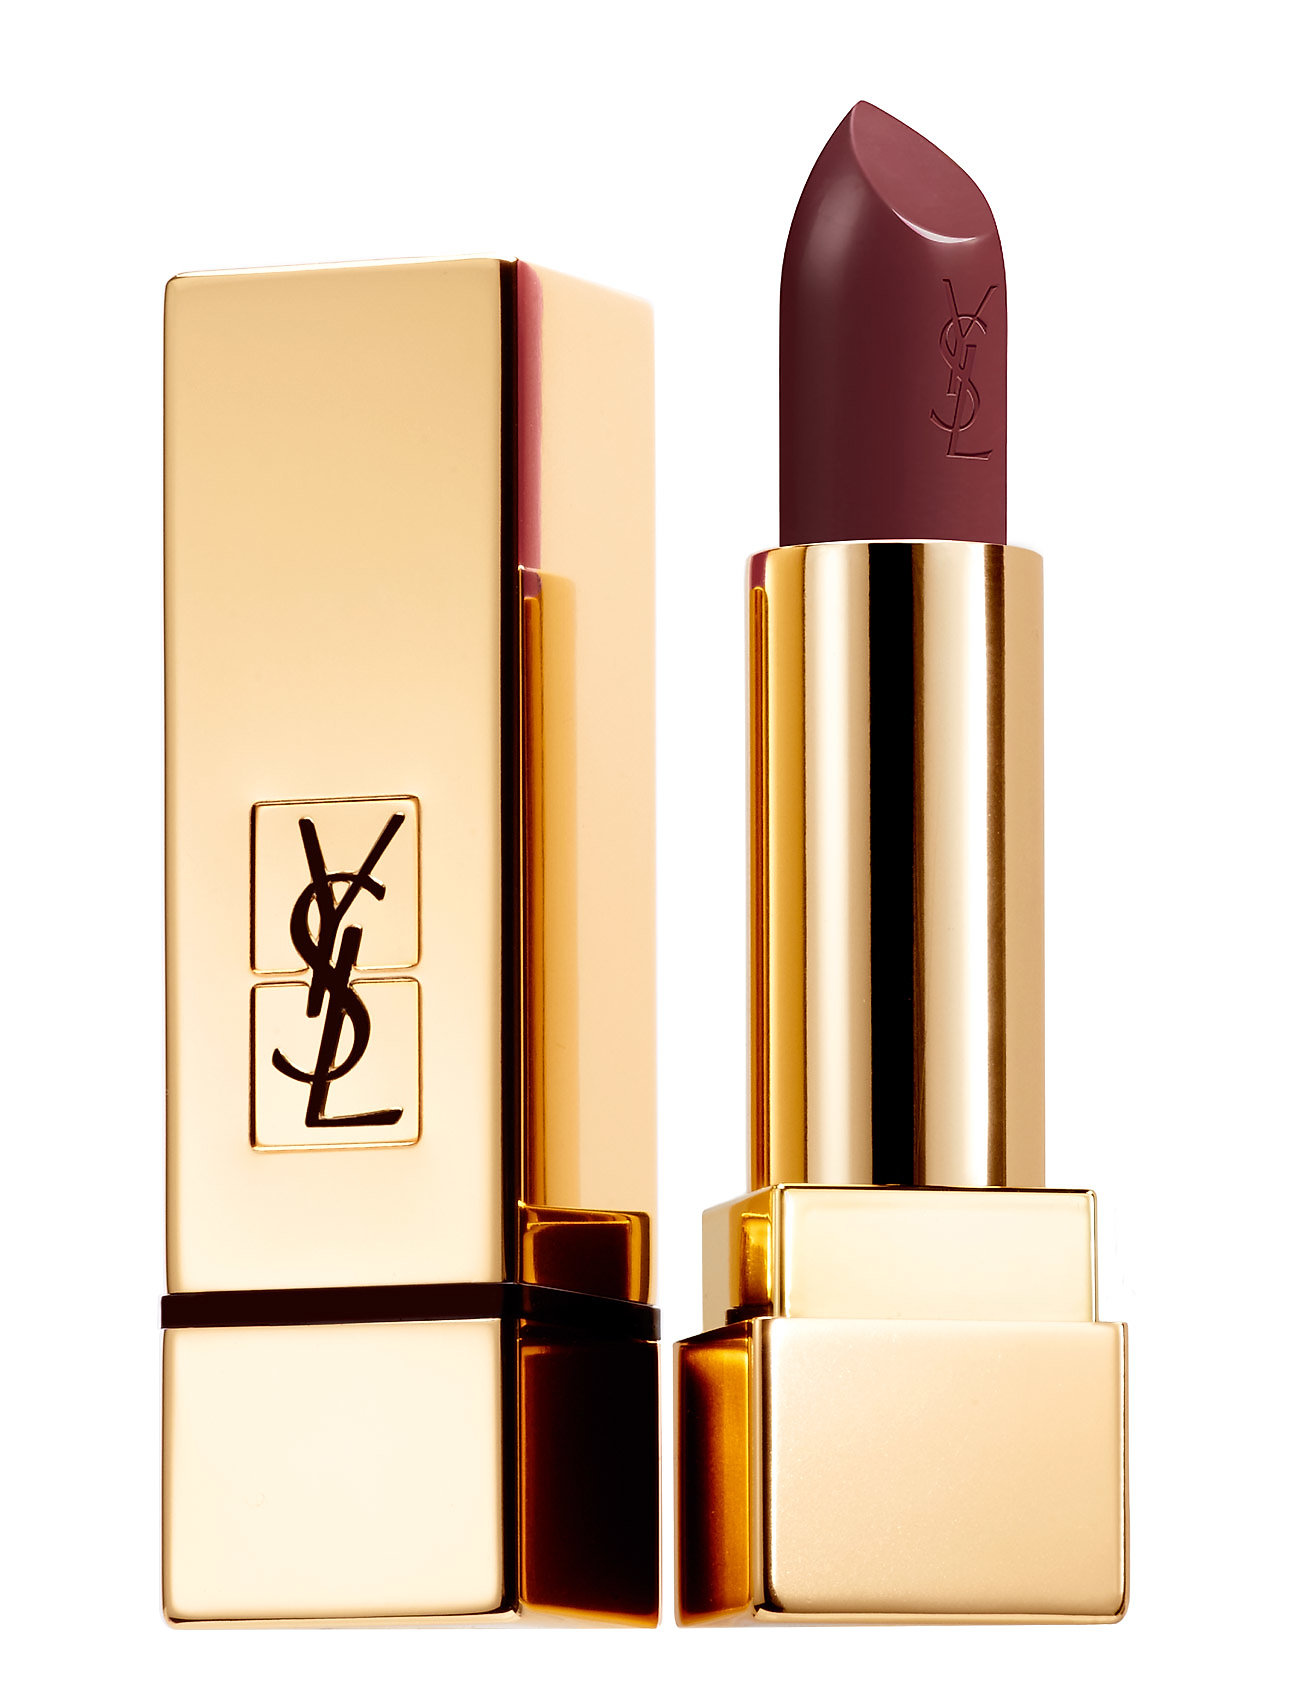 Rouge pur couture fra yves saint laurent fra boozt.com dk